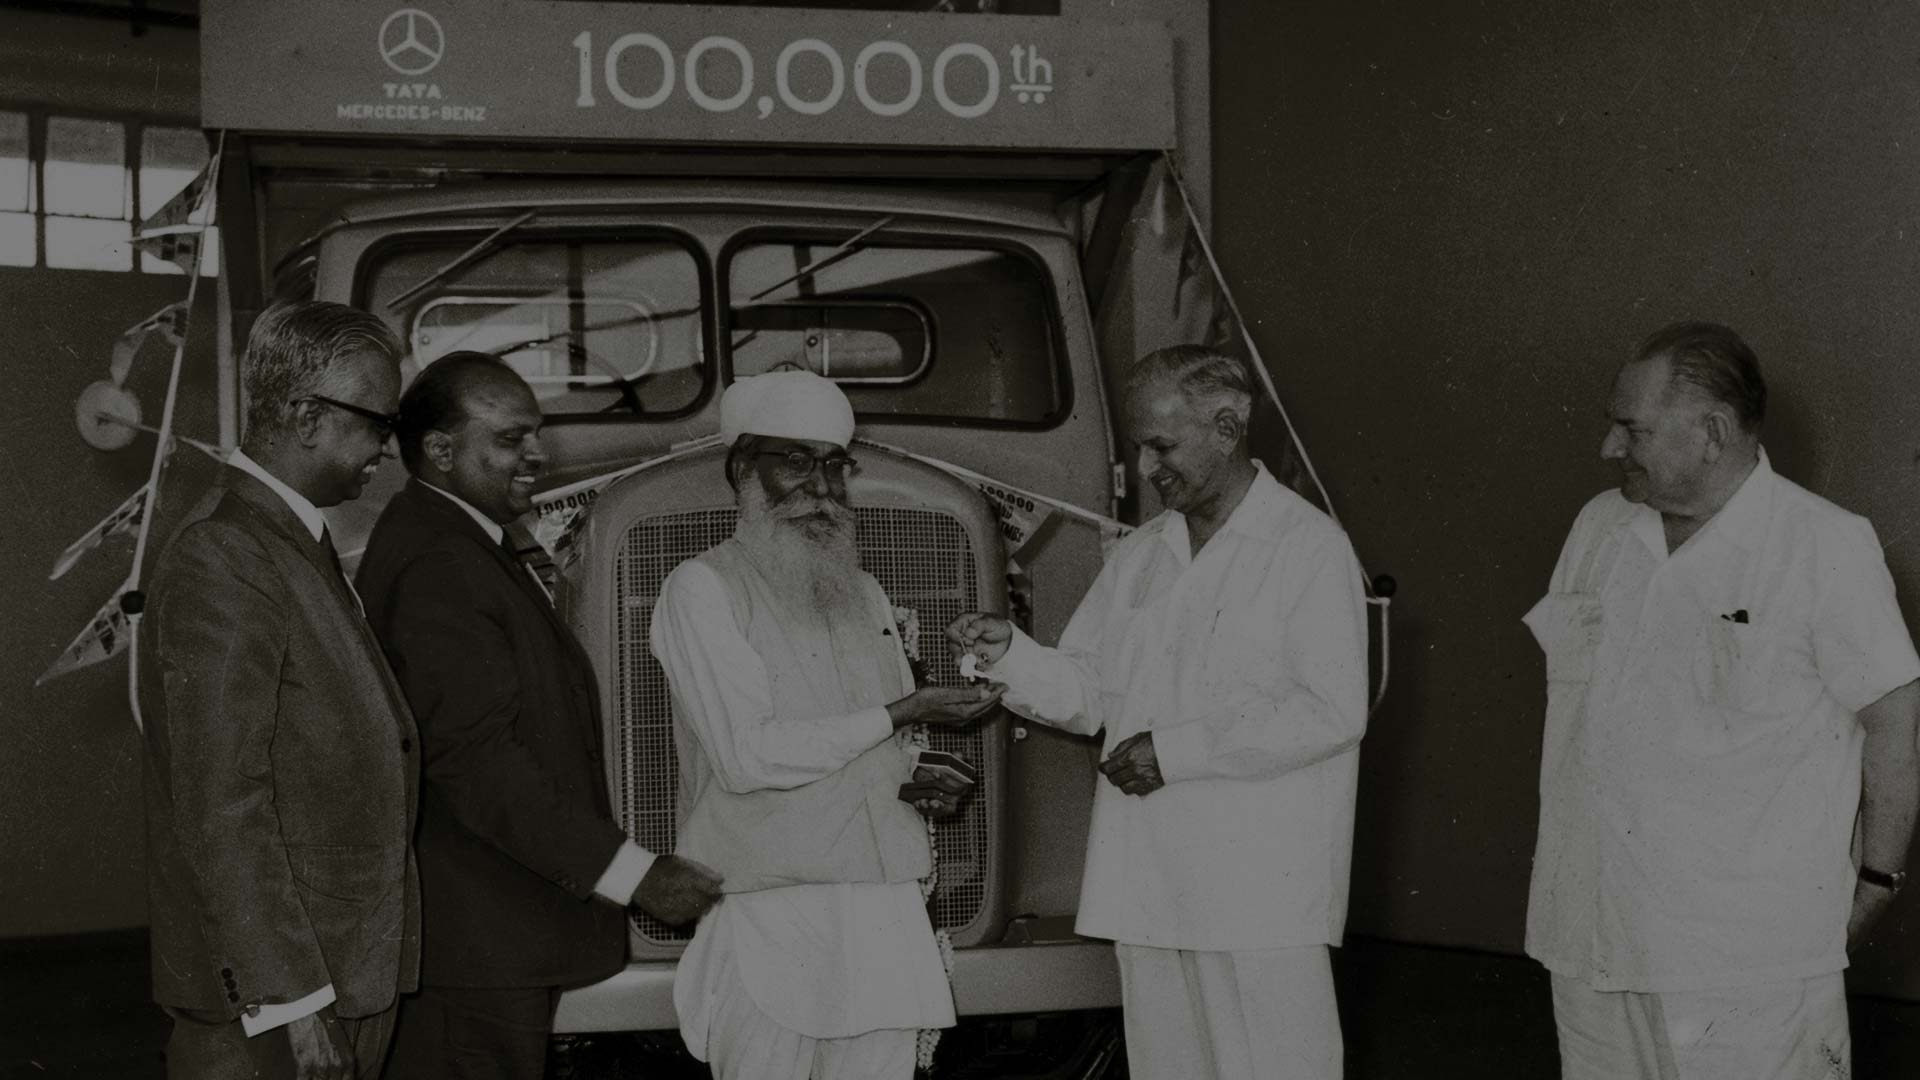 Tata Motors' 100,000th truck